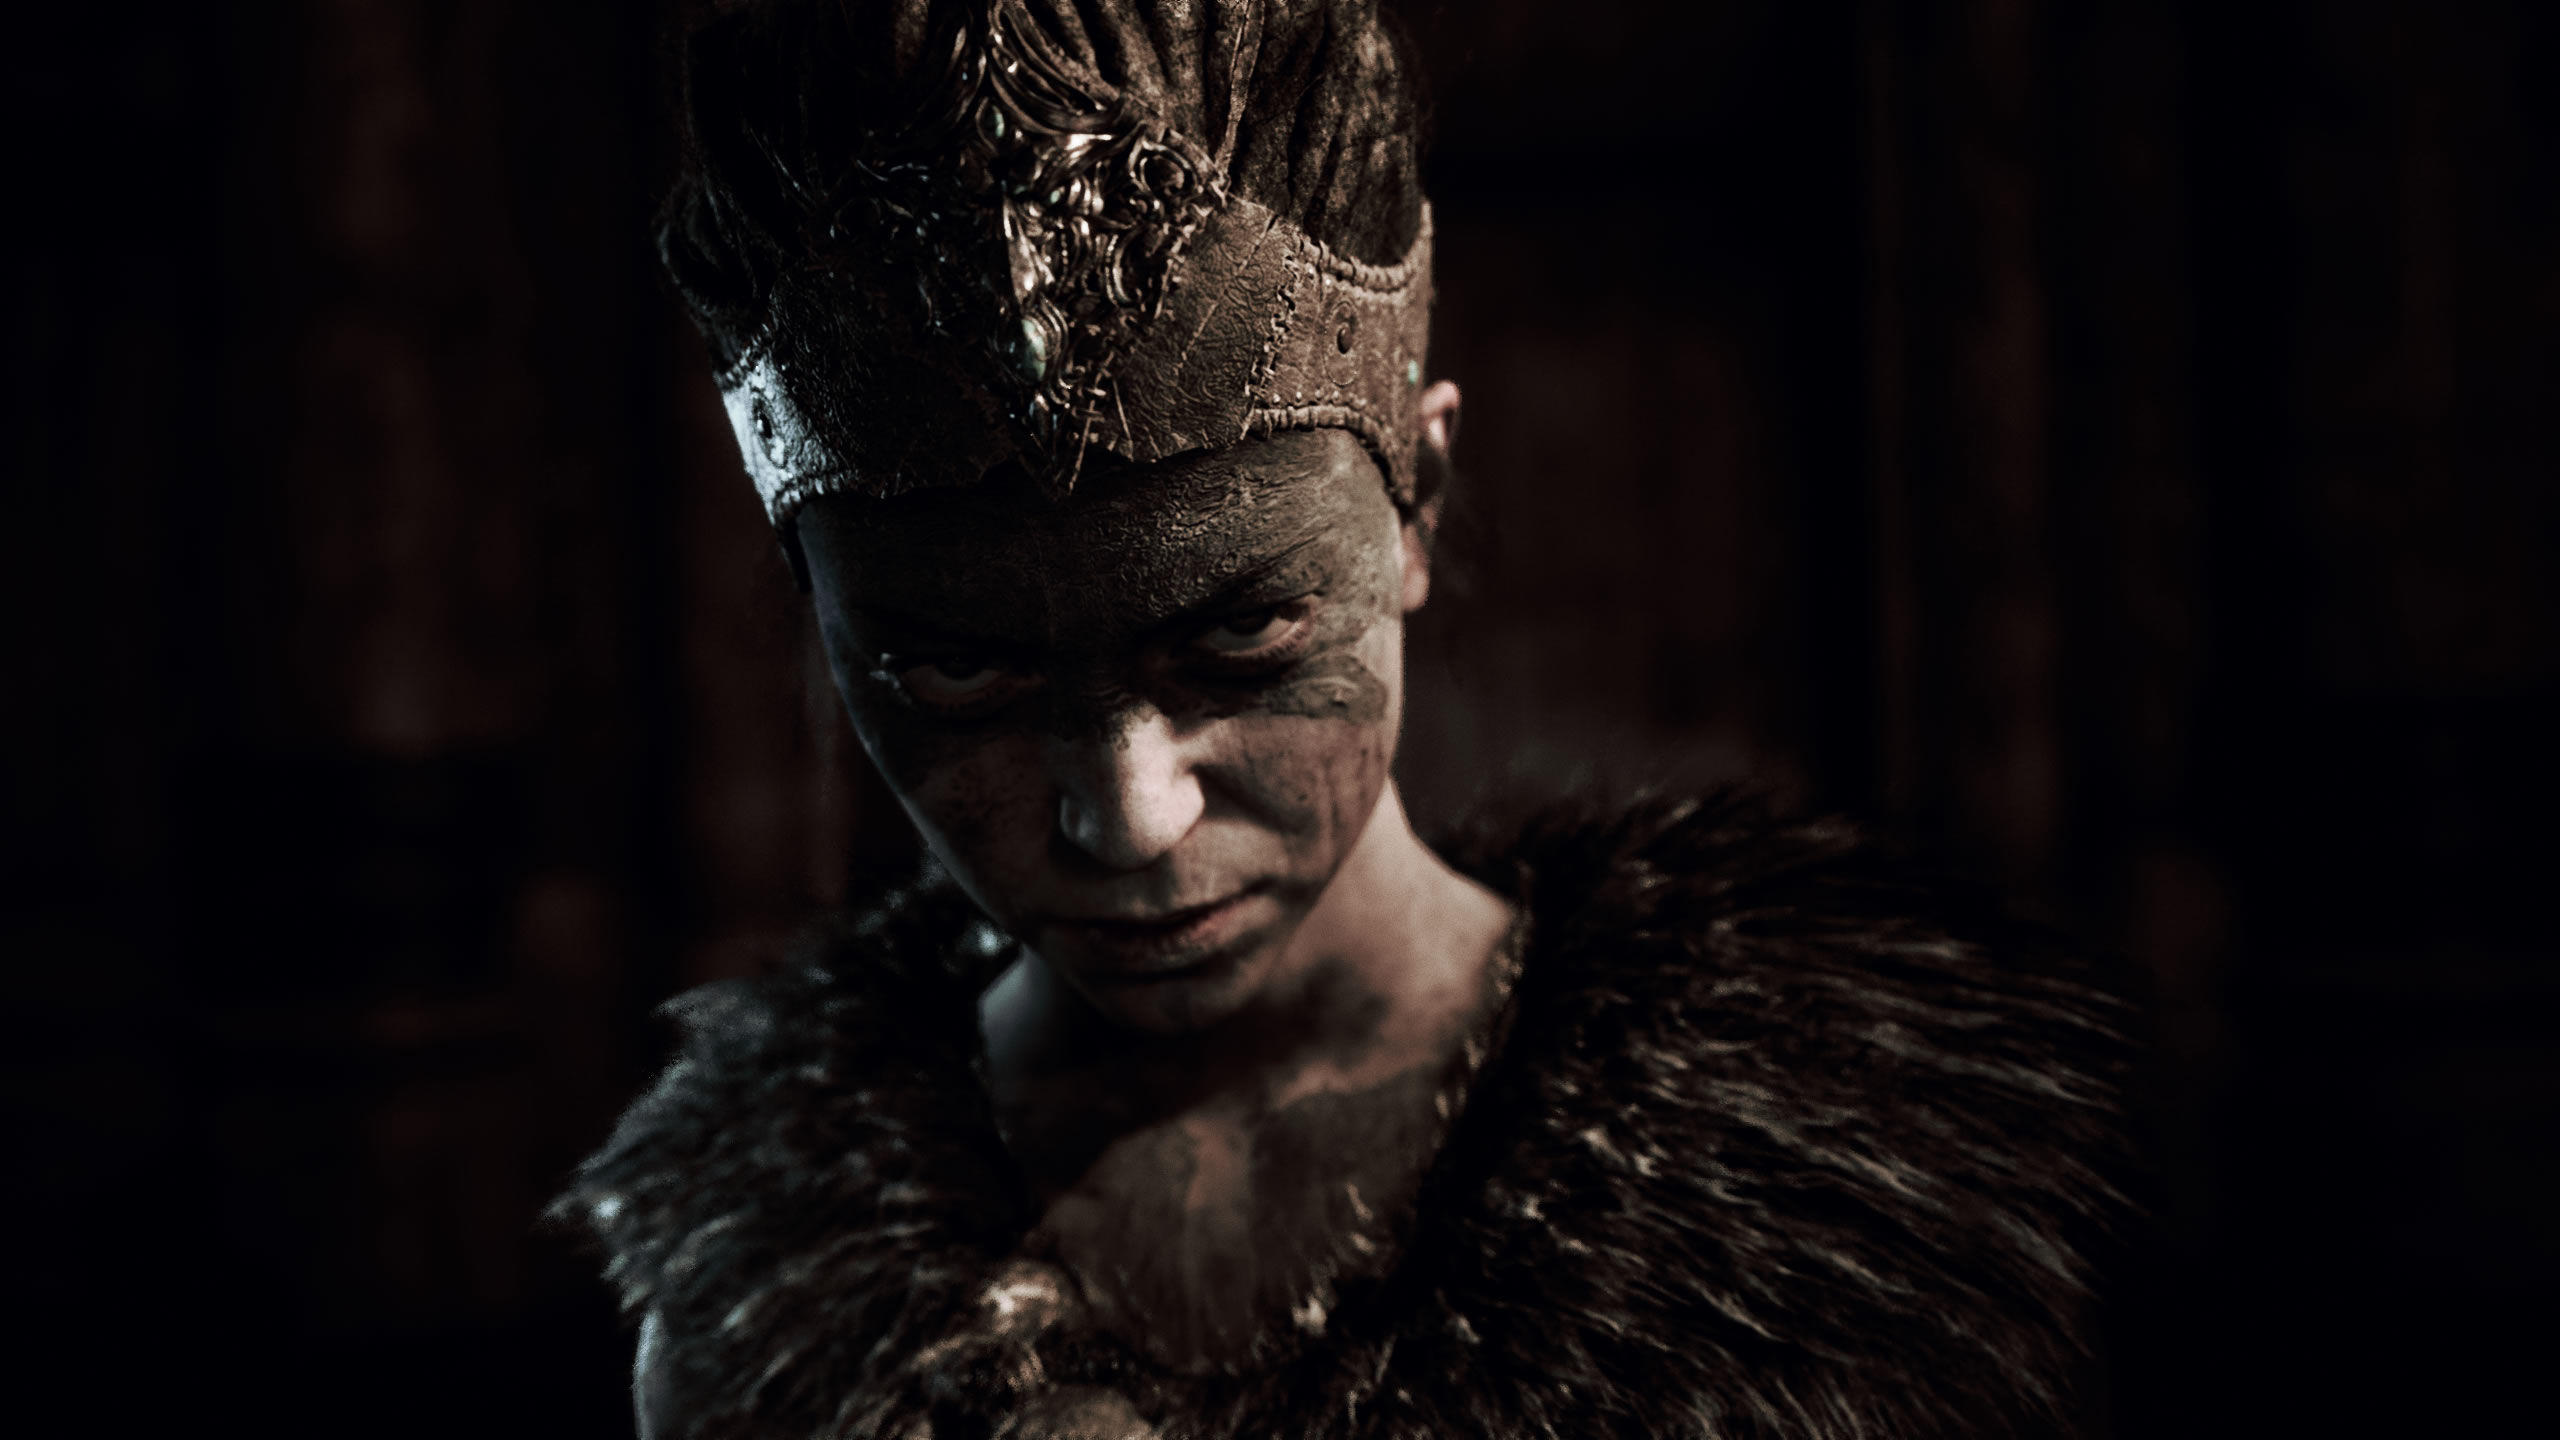 Senua looking angrily at the camera